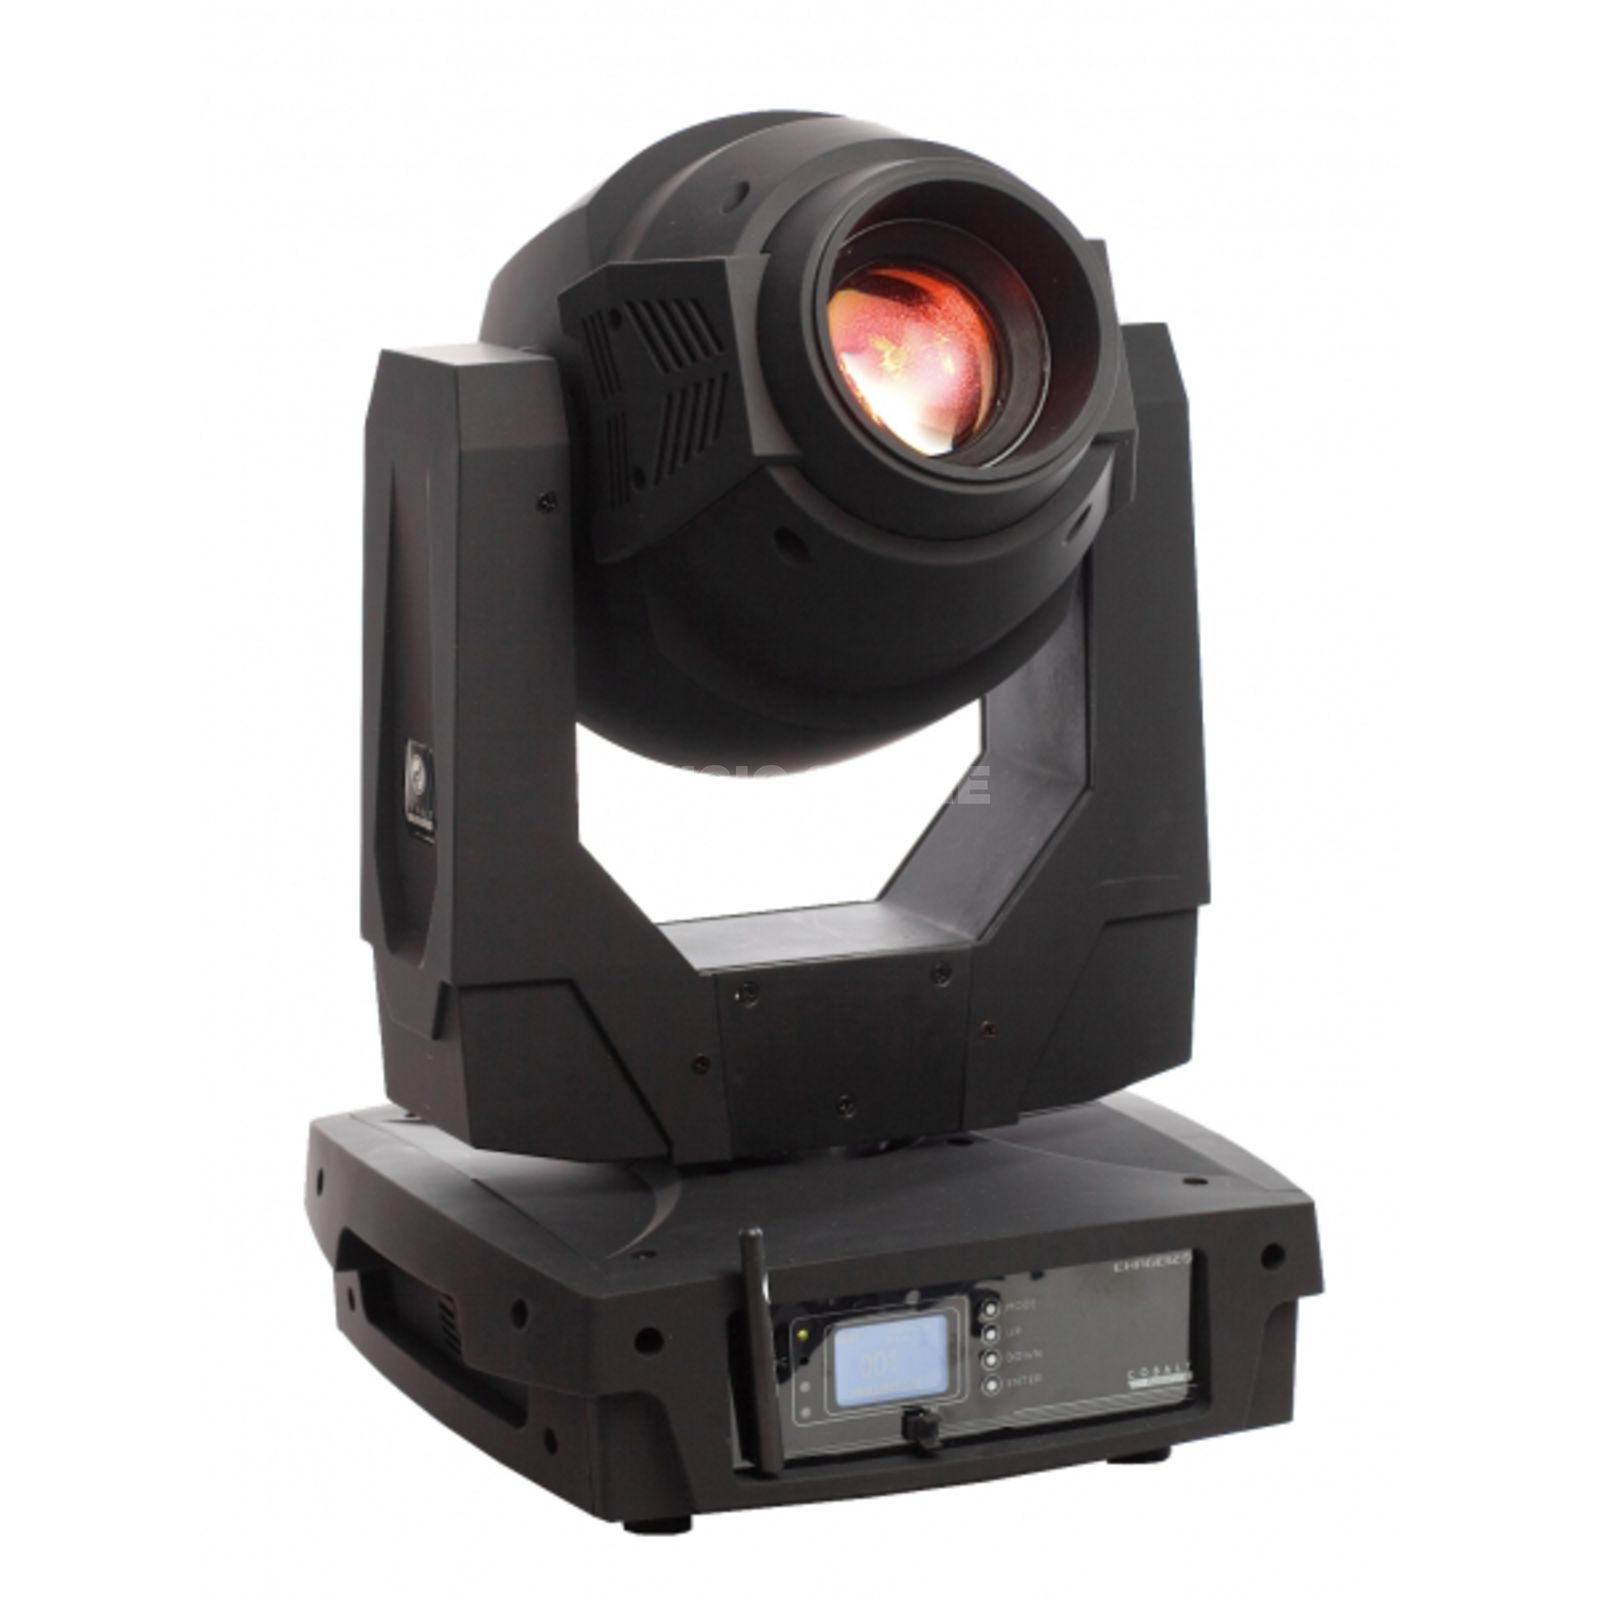 Ehrgeiz LED Cobalt Plus Spot 90 Moving Head, 1x 90W white LED Produktbillede